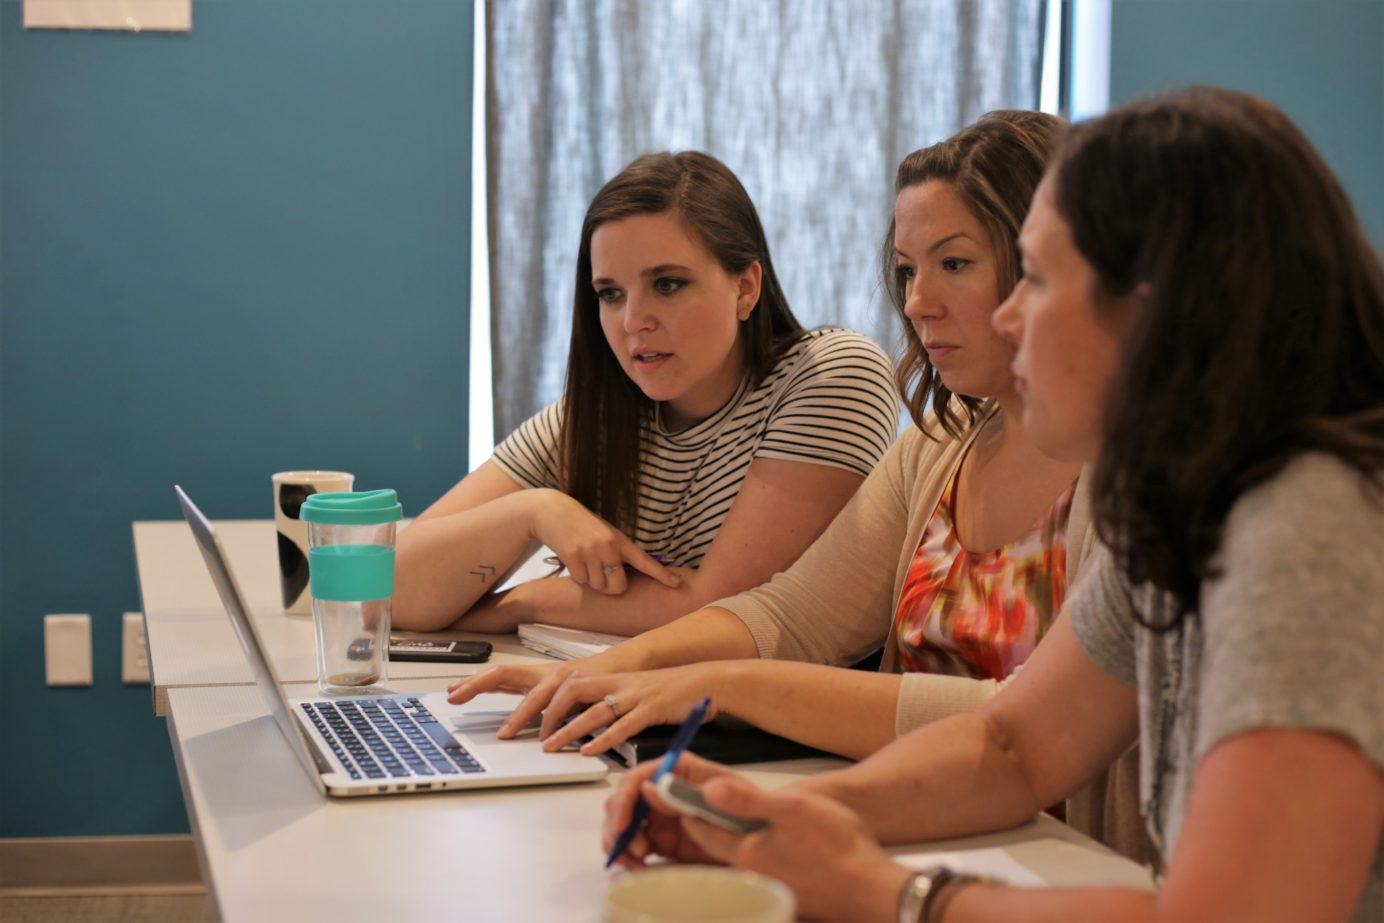 Members of Girls With Ideas, an ISA portfolio team, look at a laptop.